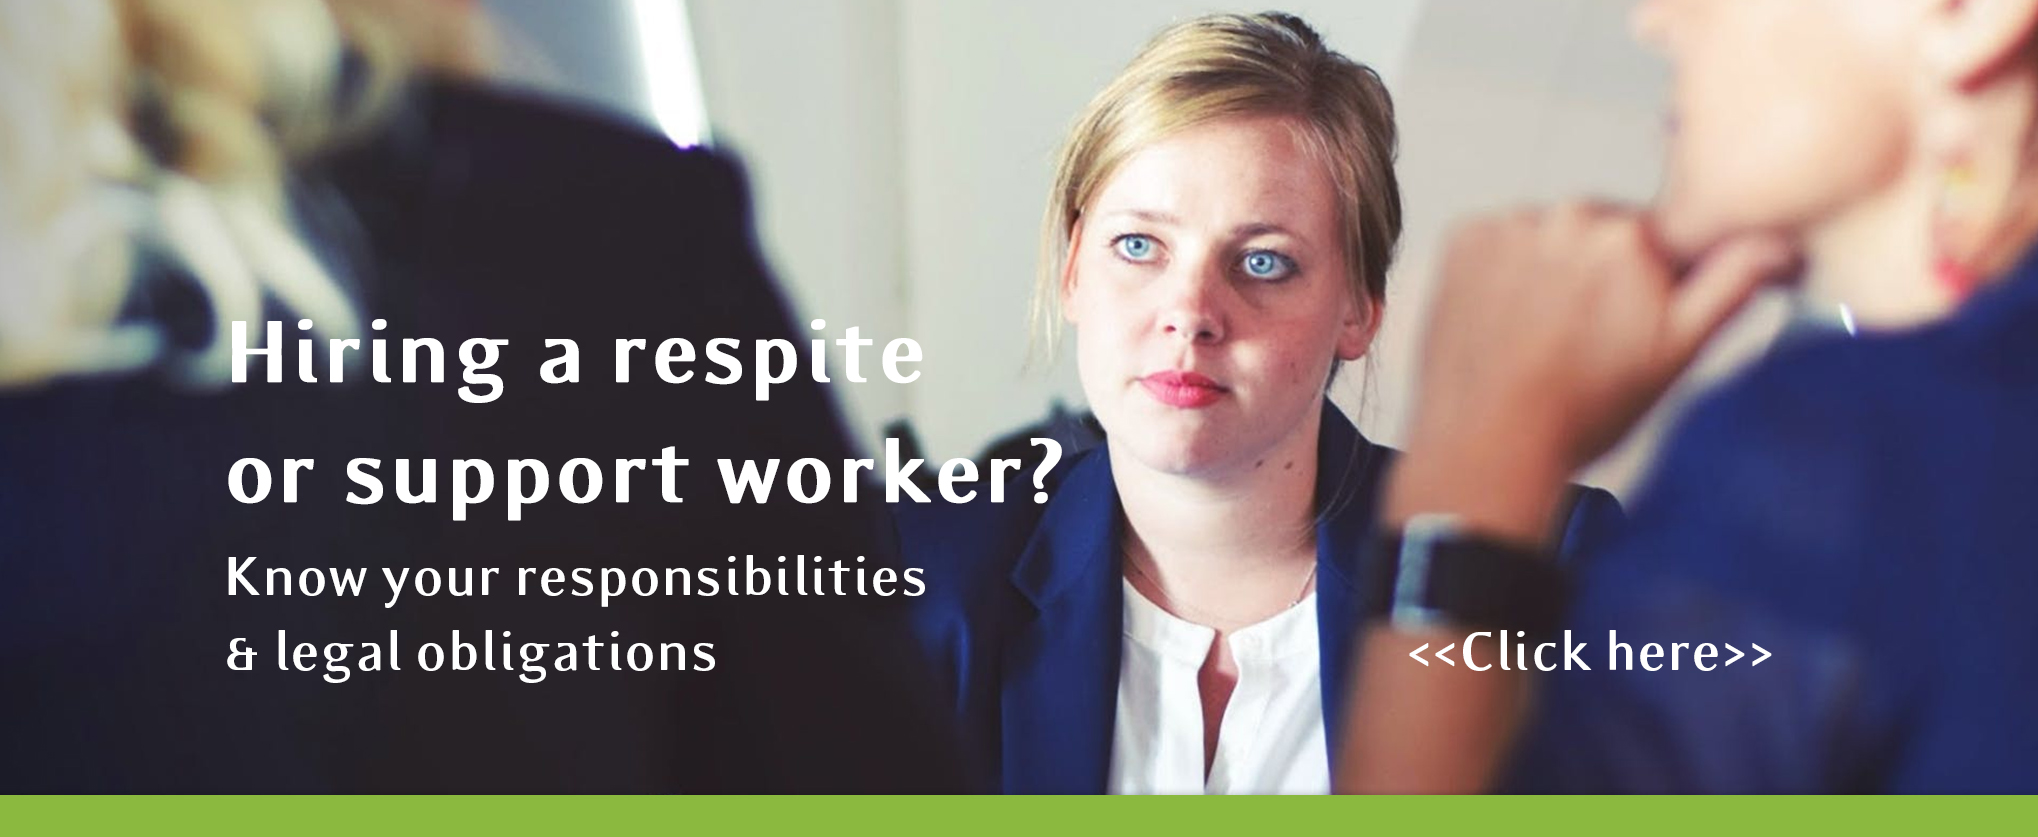 Hiring a support or respite worker